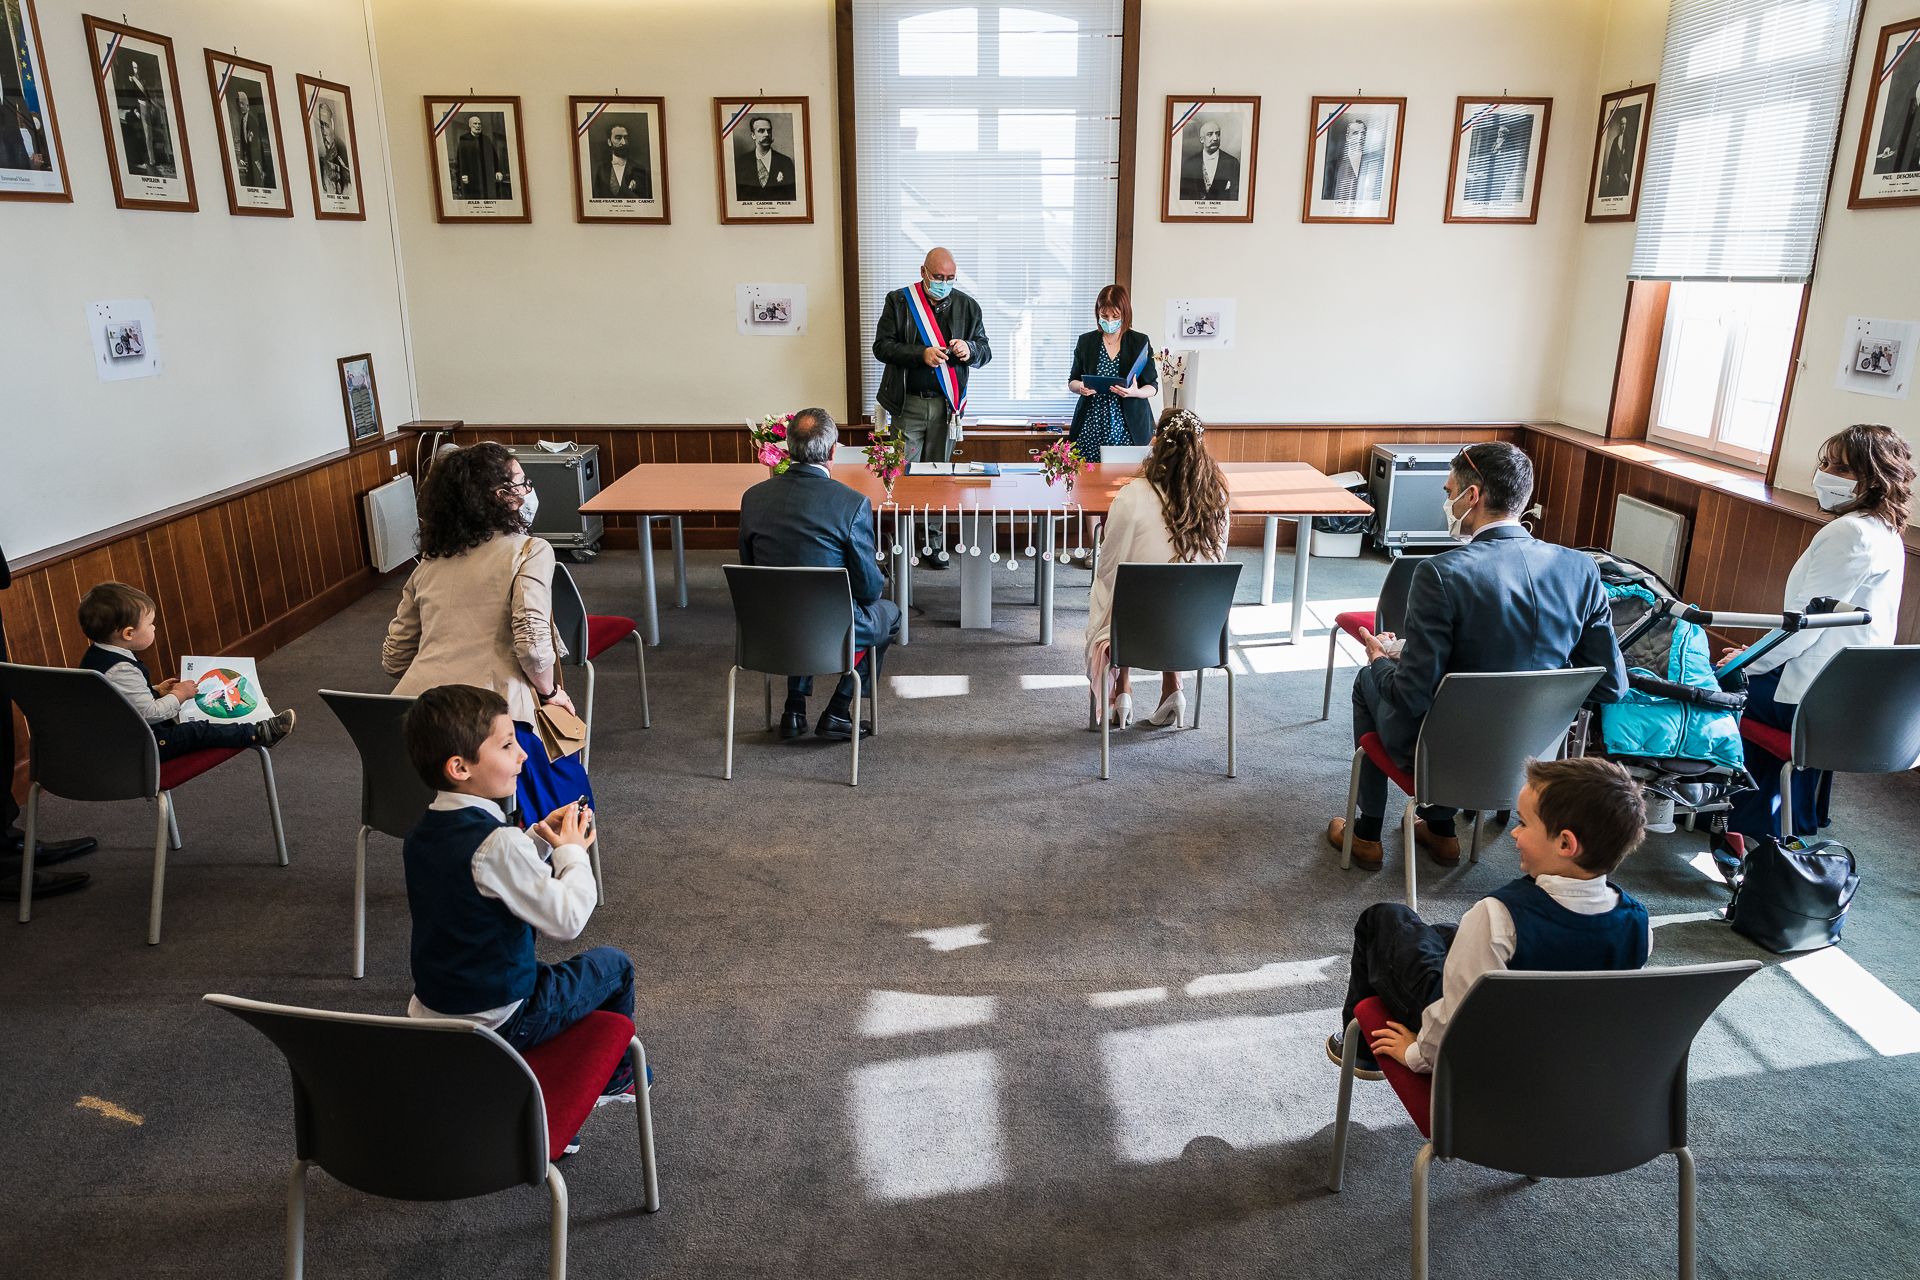 Saint-Laurent-Nouan Town Hall, France Wedding Photos | The kids simply wanted to play and spend time with their family members